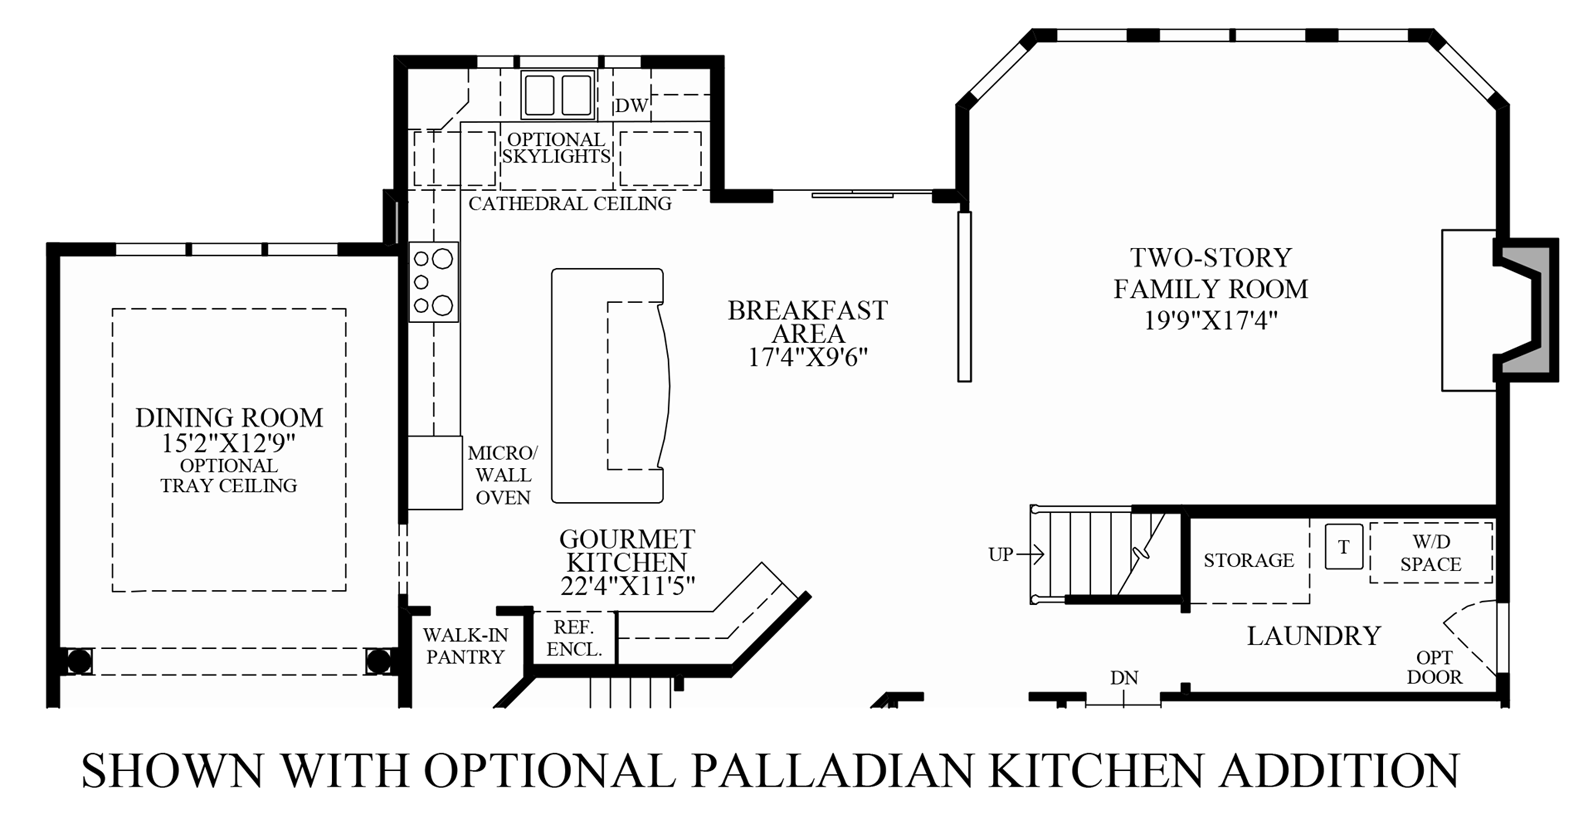 House plans with a view to the rear house plans with a for House plans with a view to the rear